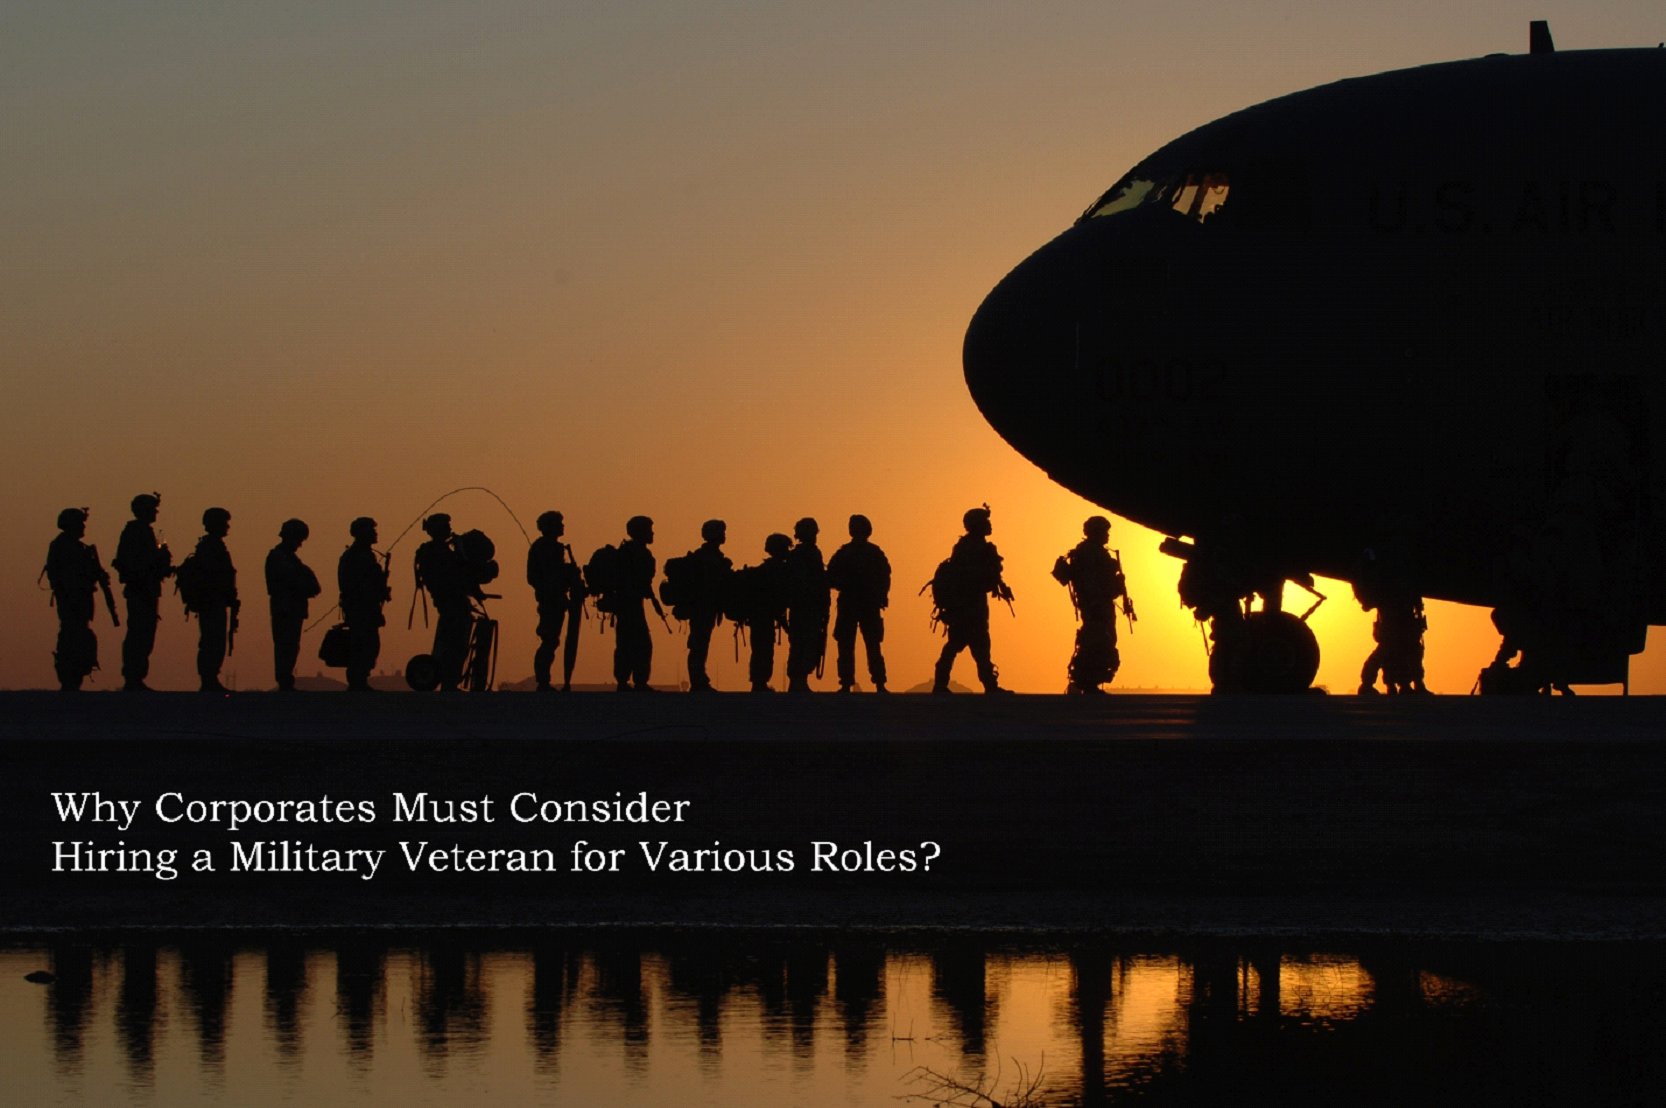 Why Corporates Must Consider Hiring a Military Veteran for Various Roles?